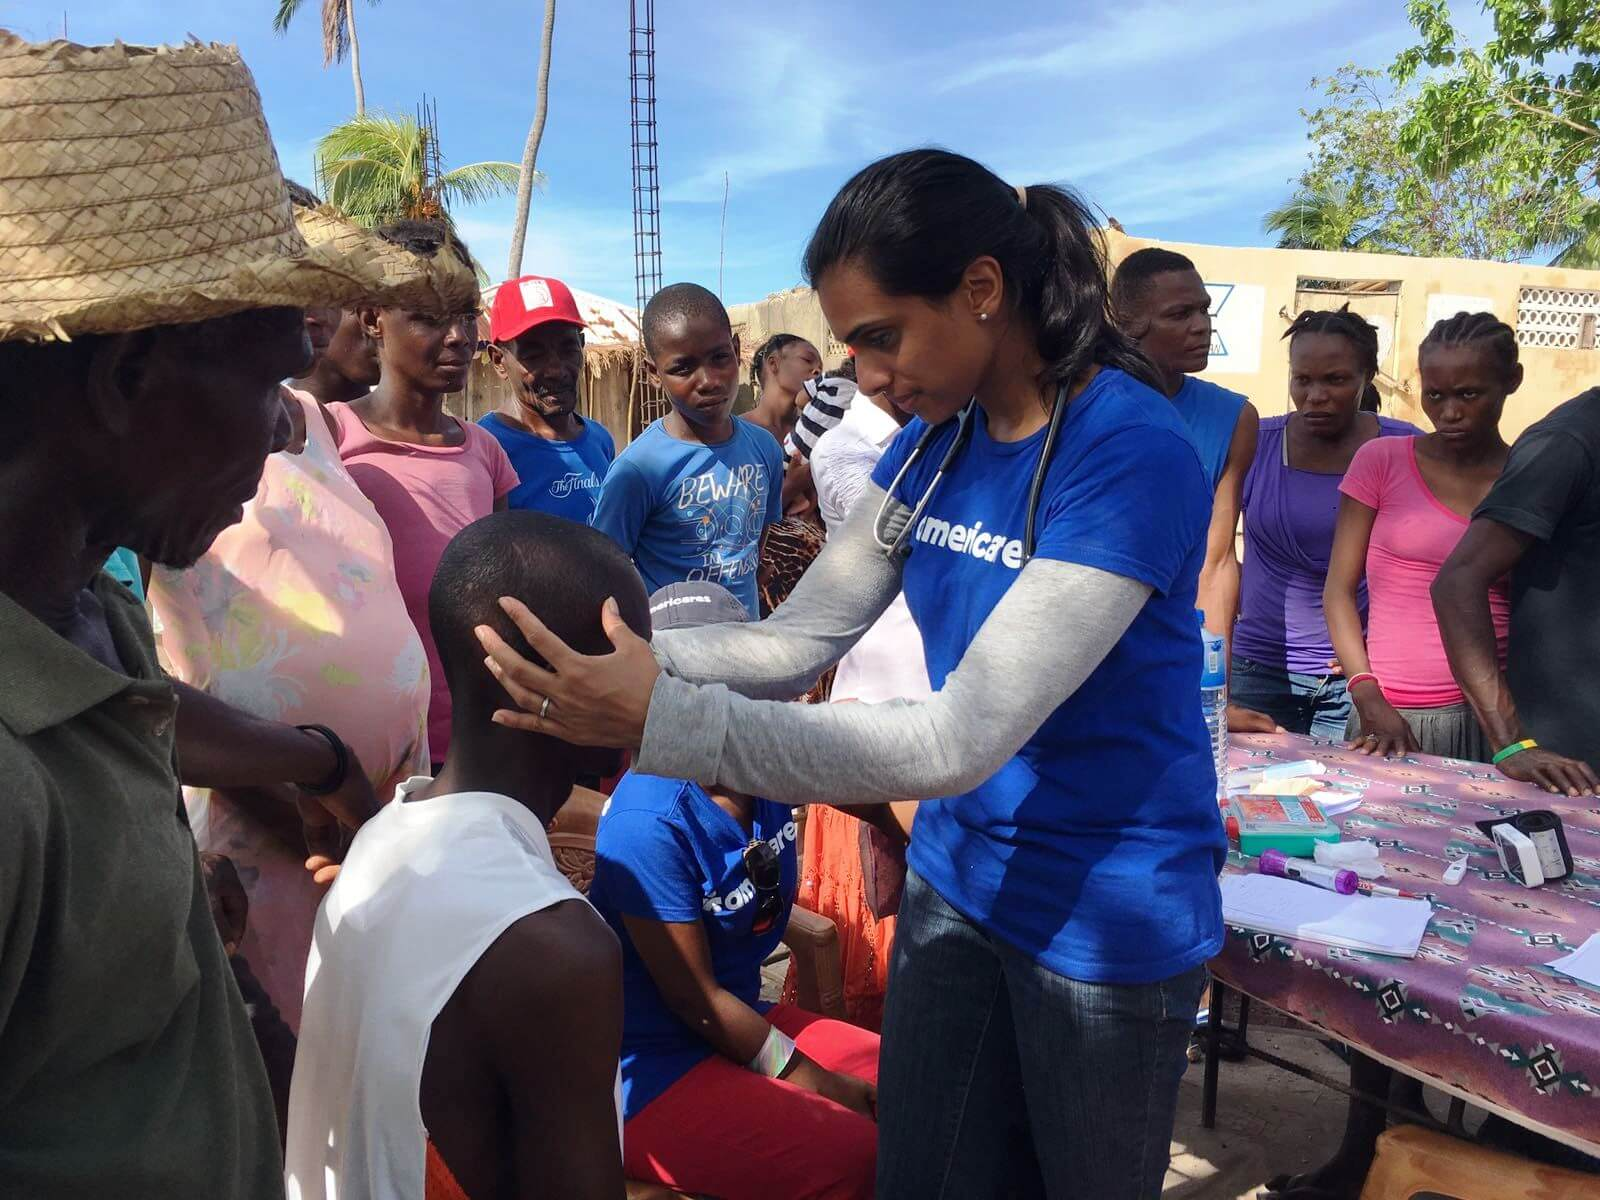 Dr. Julie at work in Haiti with a mobile medical unit